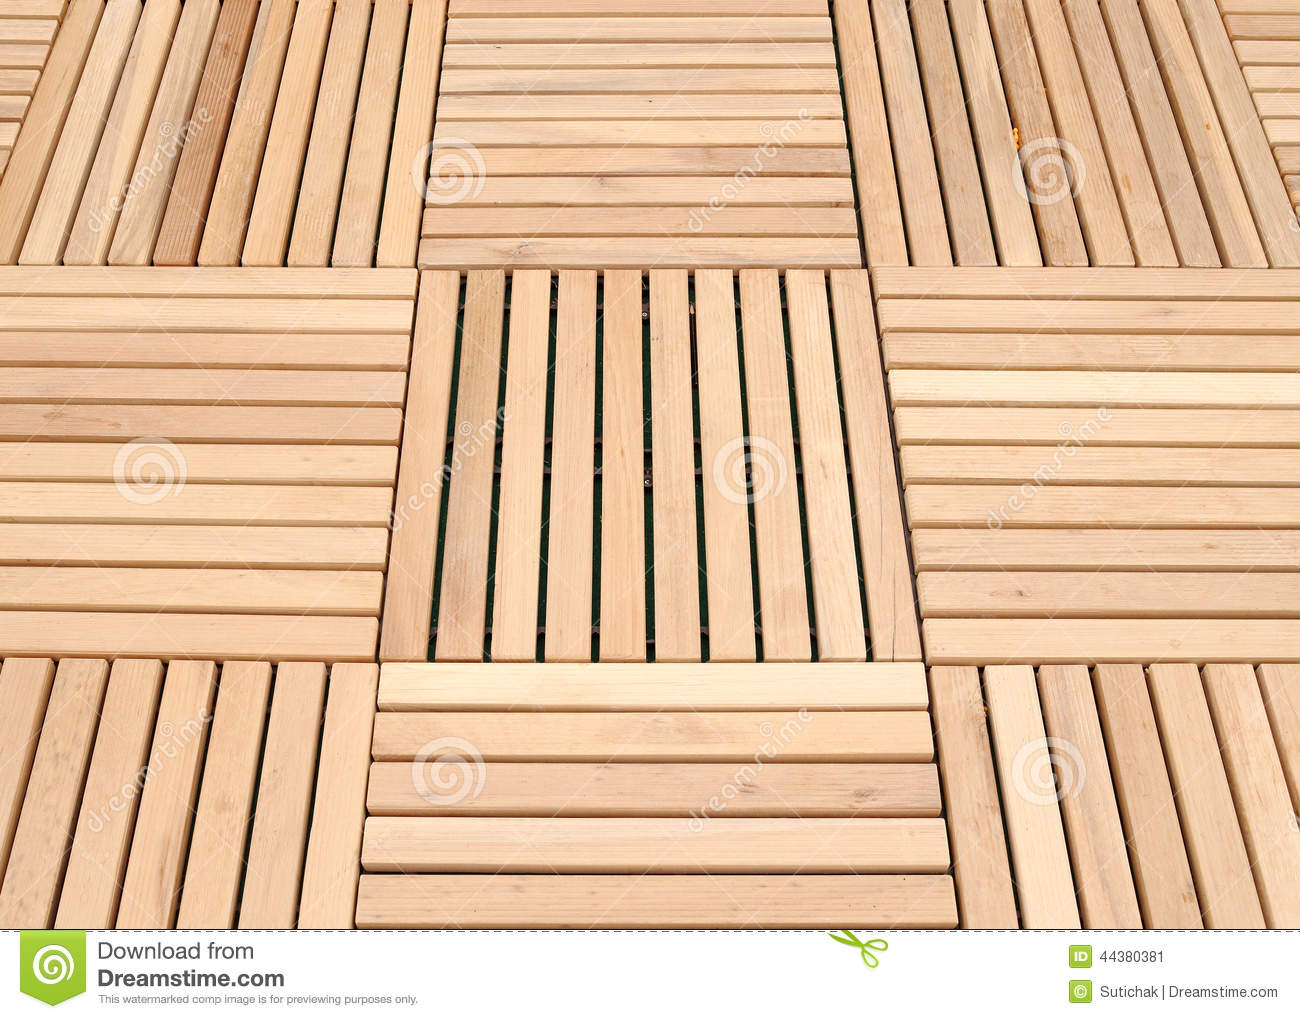 Wonderful image of  Panel. 2048 Aged Wood Panel Floor GameBanana Textures Wood. Structural with #B66715 color and 1300x1019 pixels